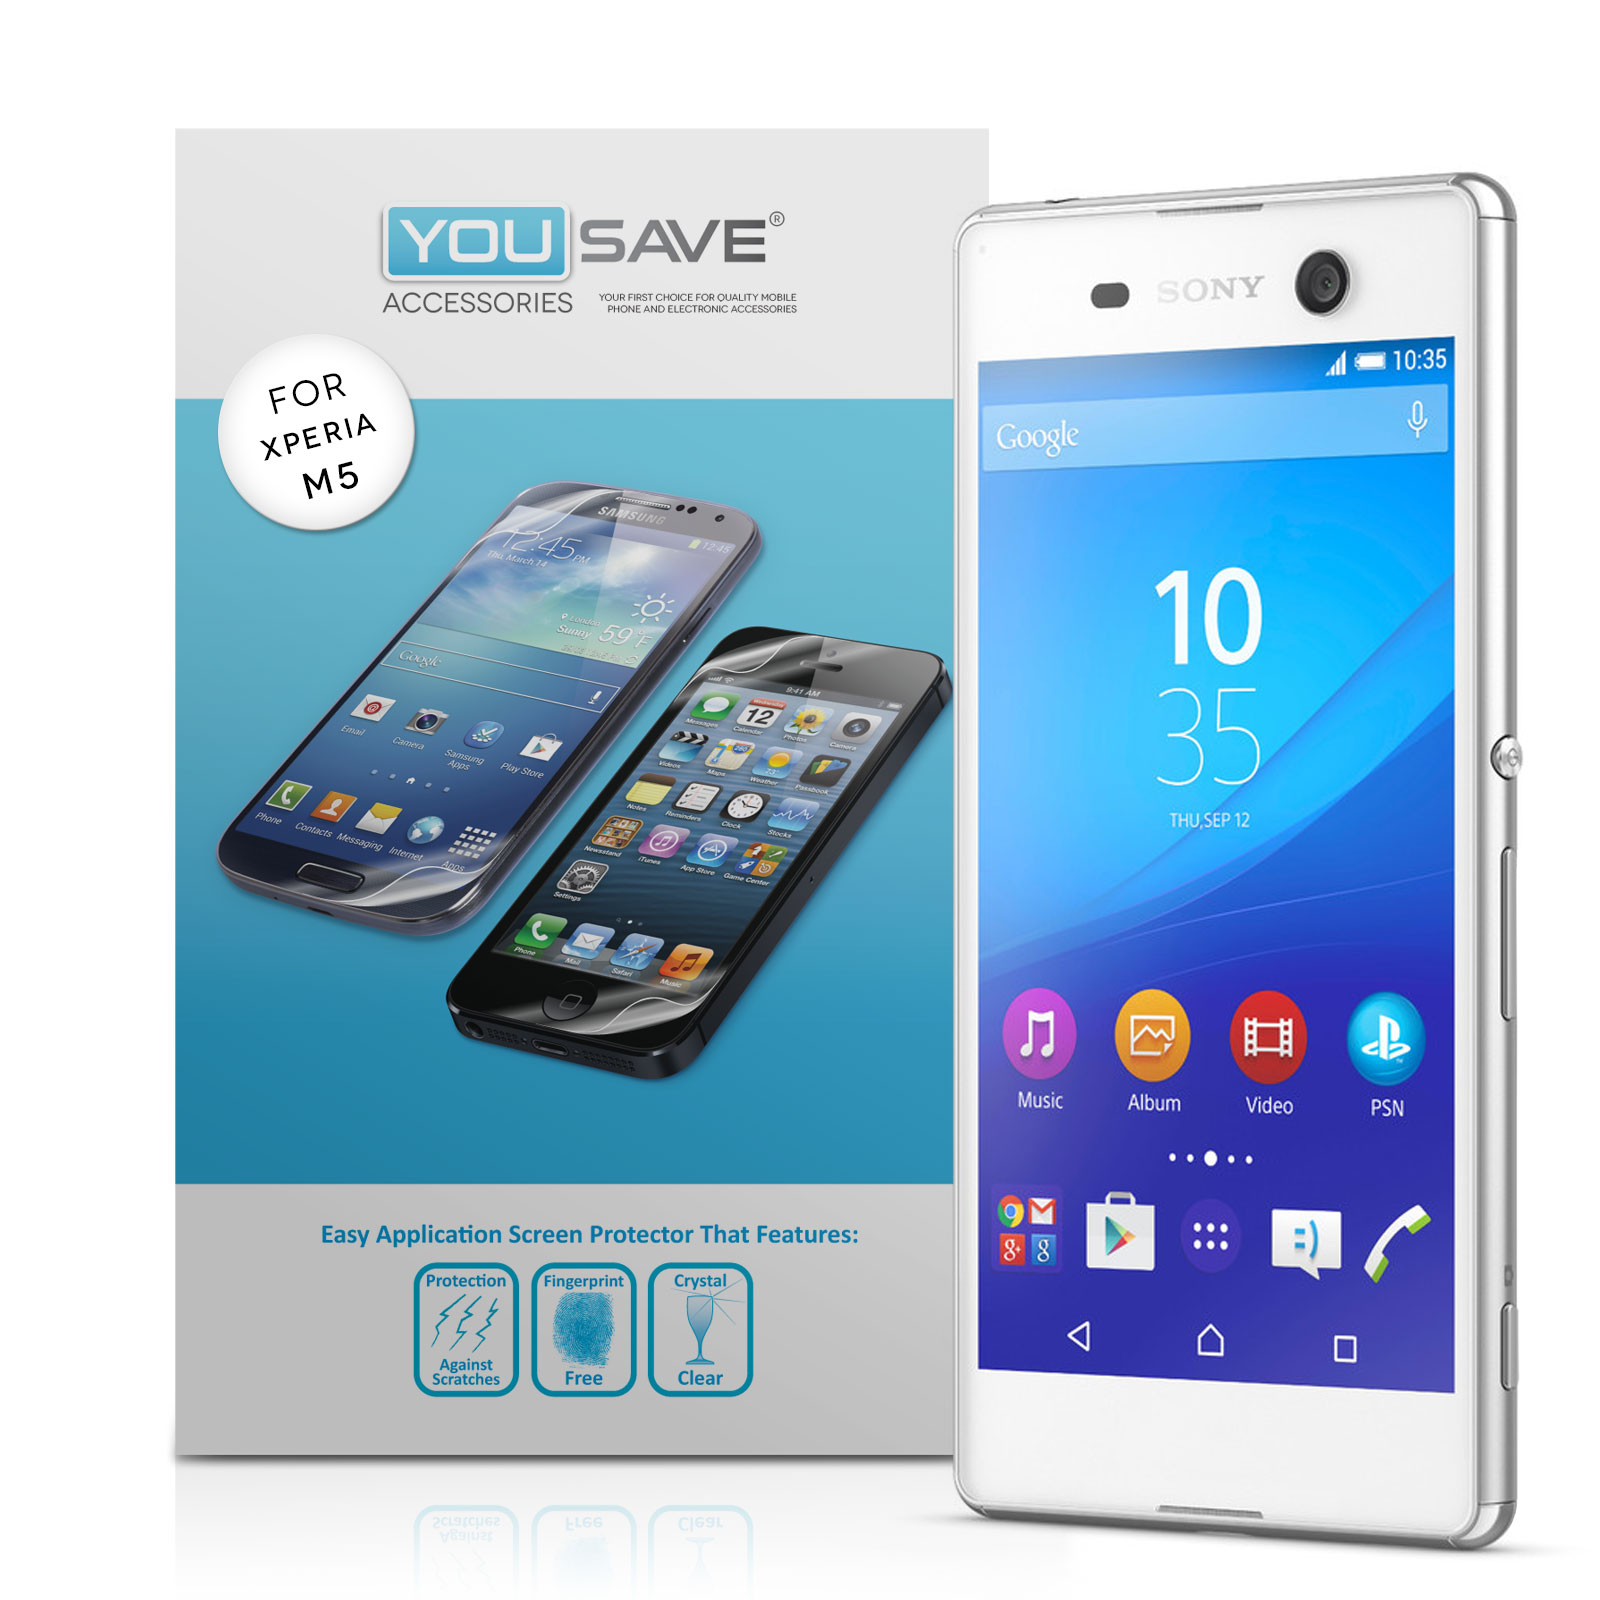 Yousave Accessories Sony Xperia M5 Screen Protectors x5